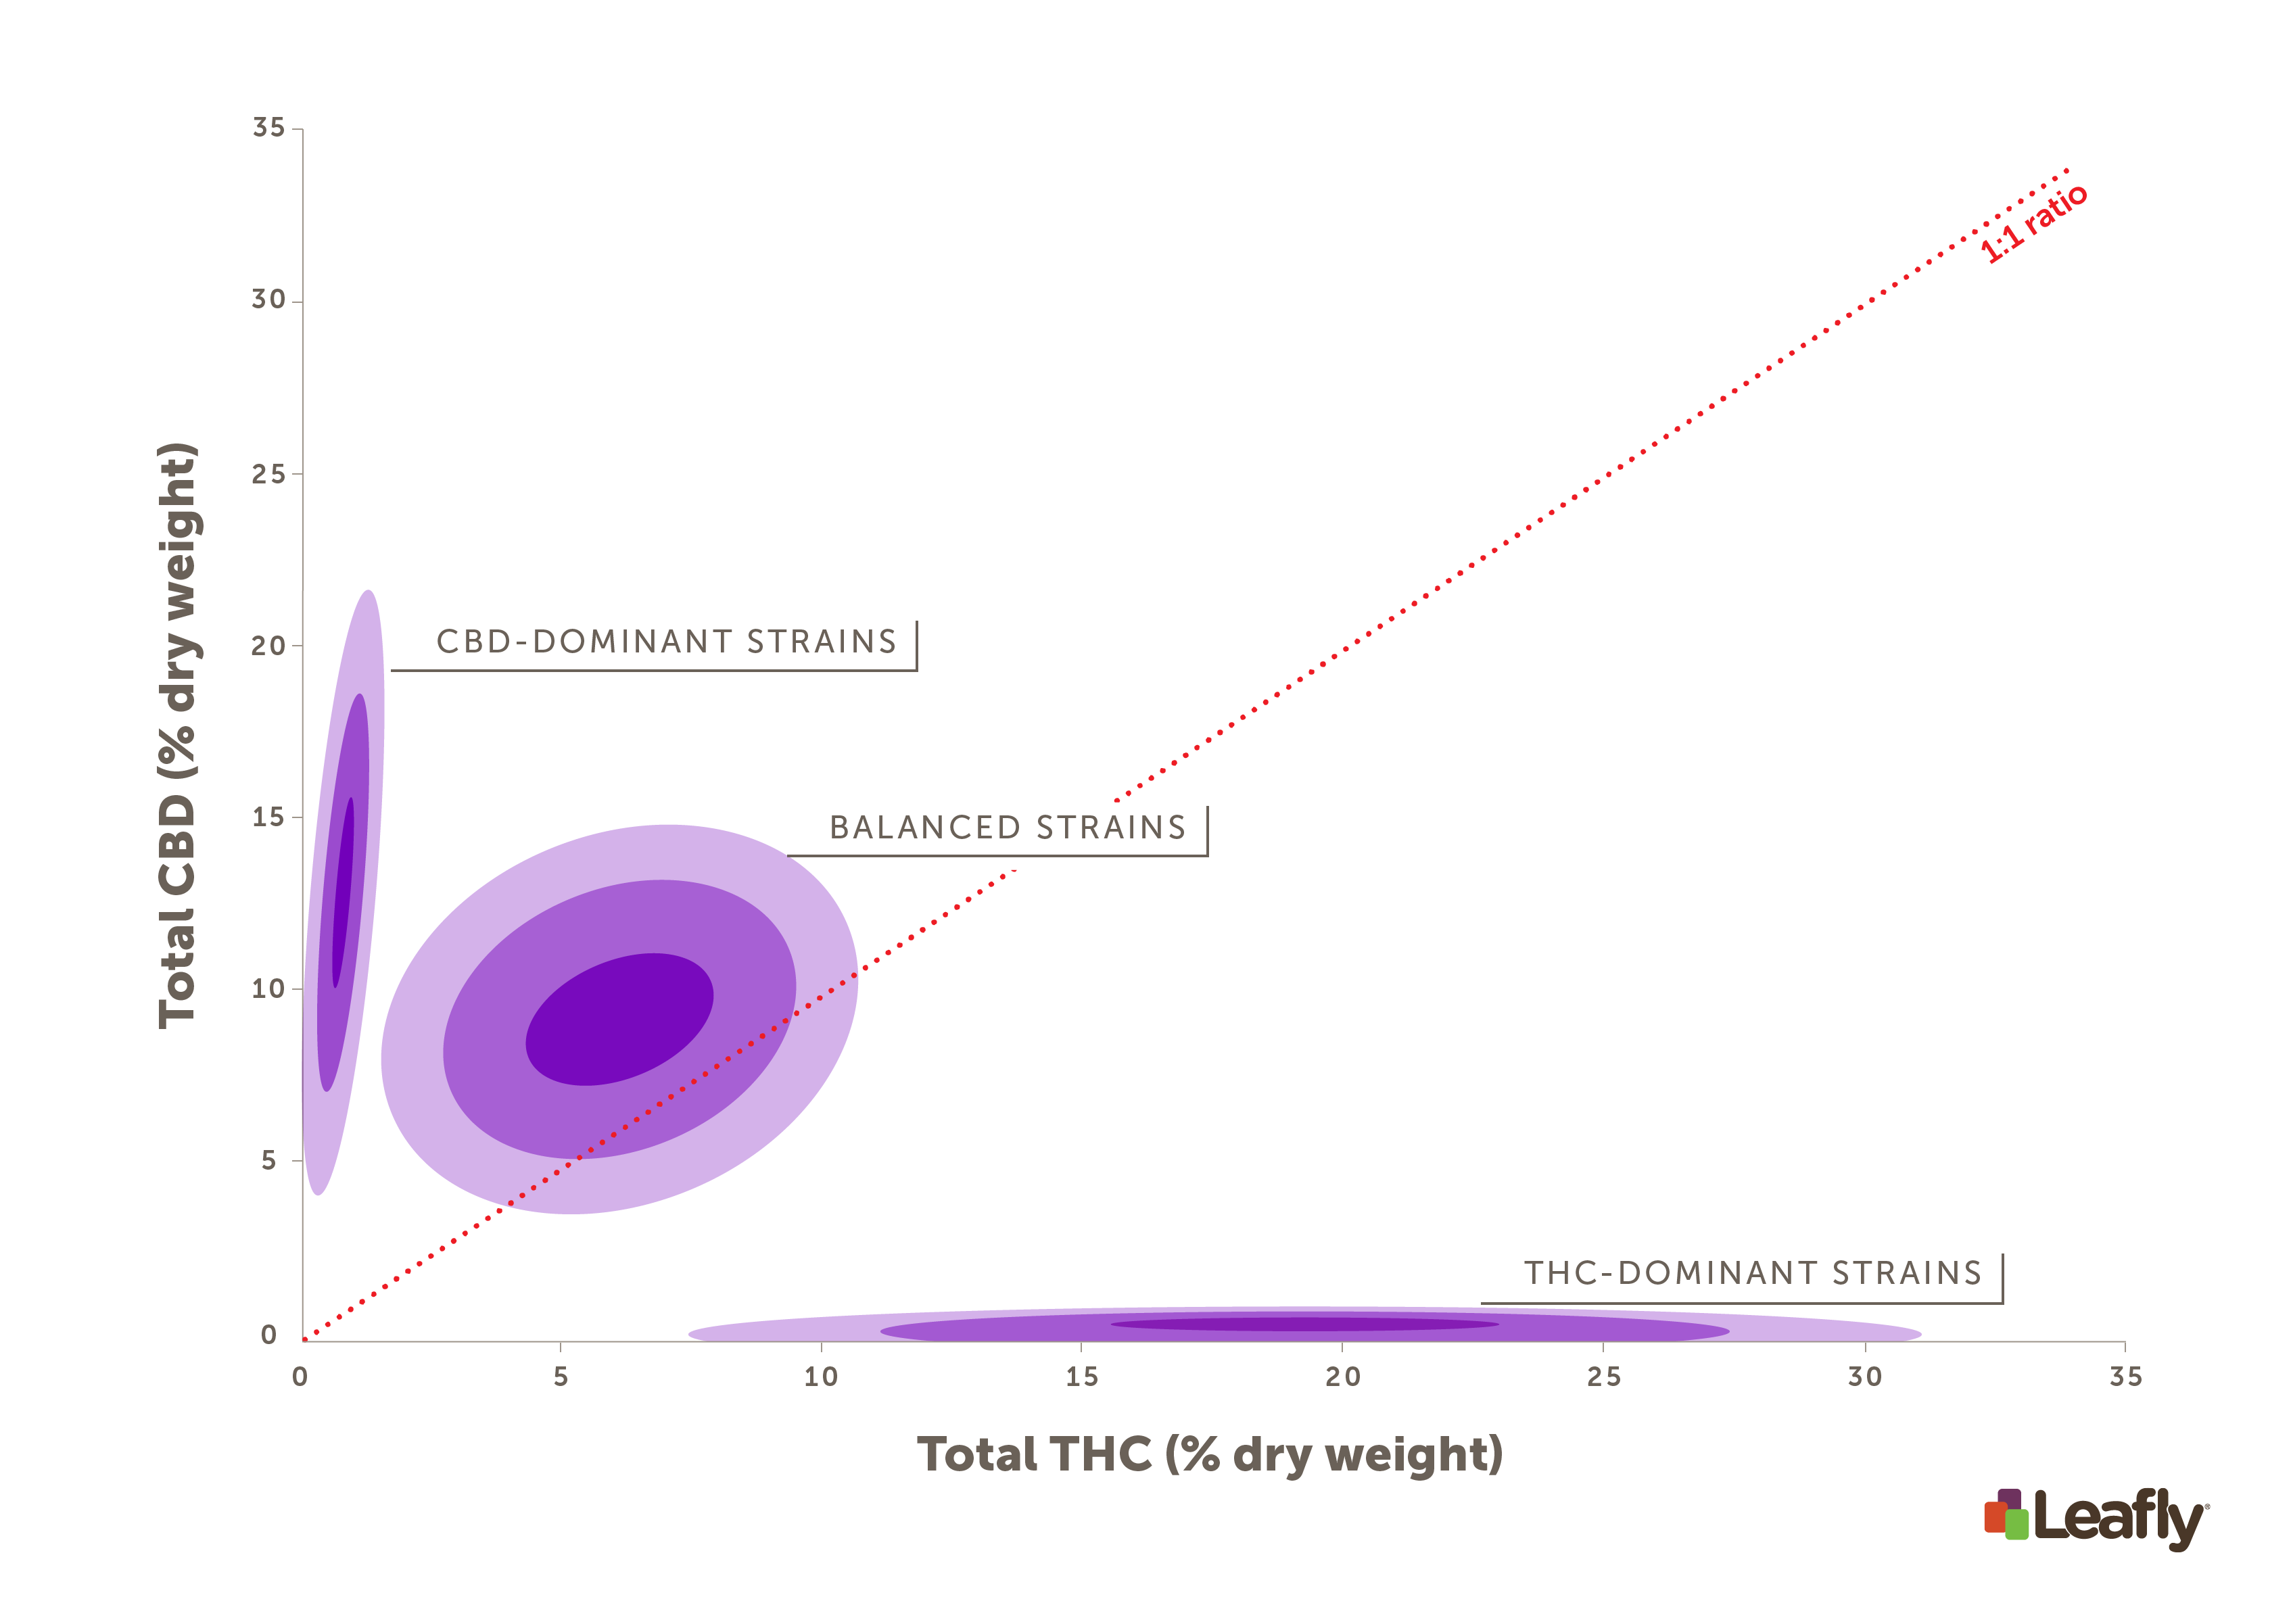 Figure 1: THC and CBD levels generally fall within three broad ranges. Almost every strain will fall into one of these. 30% total THC by dry weight should be considered very potent, and it's difficult to get plants to produce much more than that. Mixed strains will have both CBD and THC, but at intermediate levels. The very center of each trio of rings is the average THC and CBD content for that strain category. Each shade of purple represents one standard deviation. So, a majority of strains in each category will fall within the innermost, dark purple ring. Note: the high-THC rings have been stretched vertically for visualization purposes. (Photo credit: Amy Phung/Leafly)